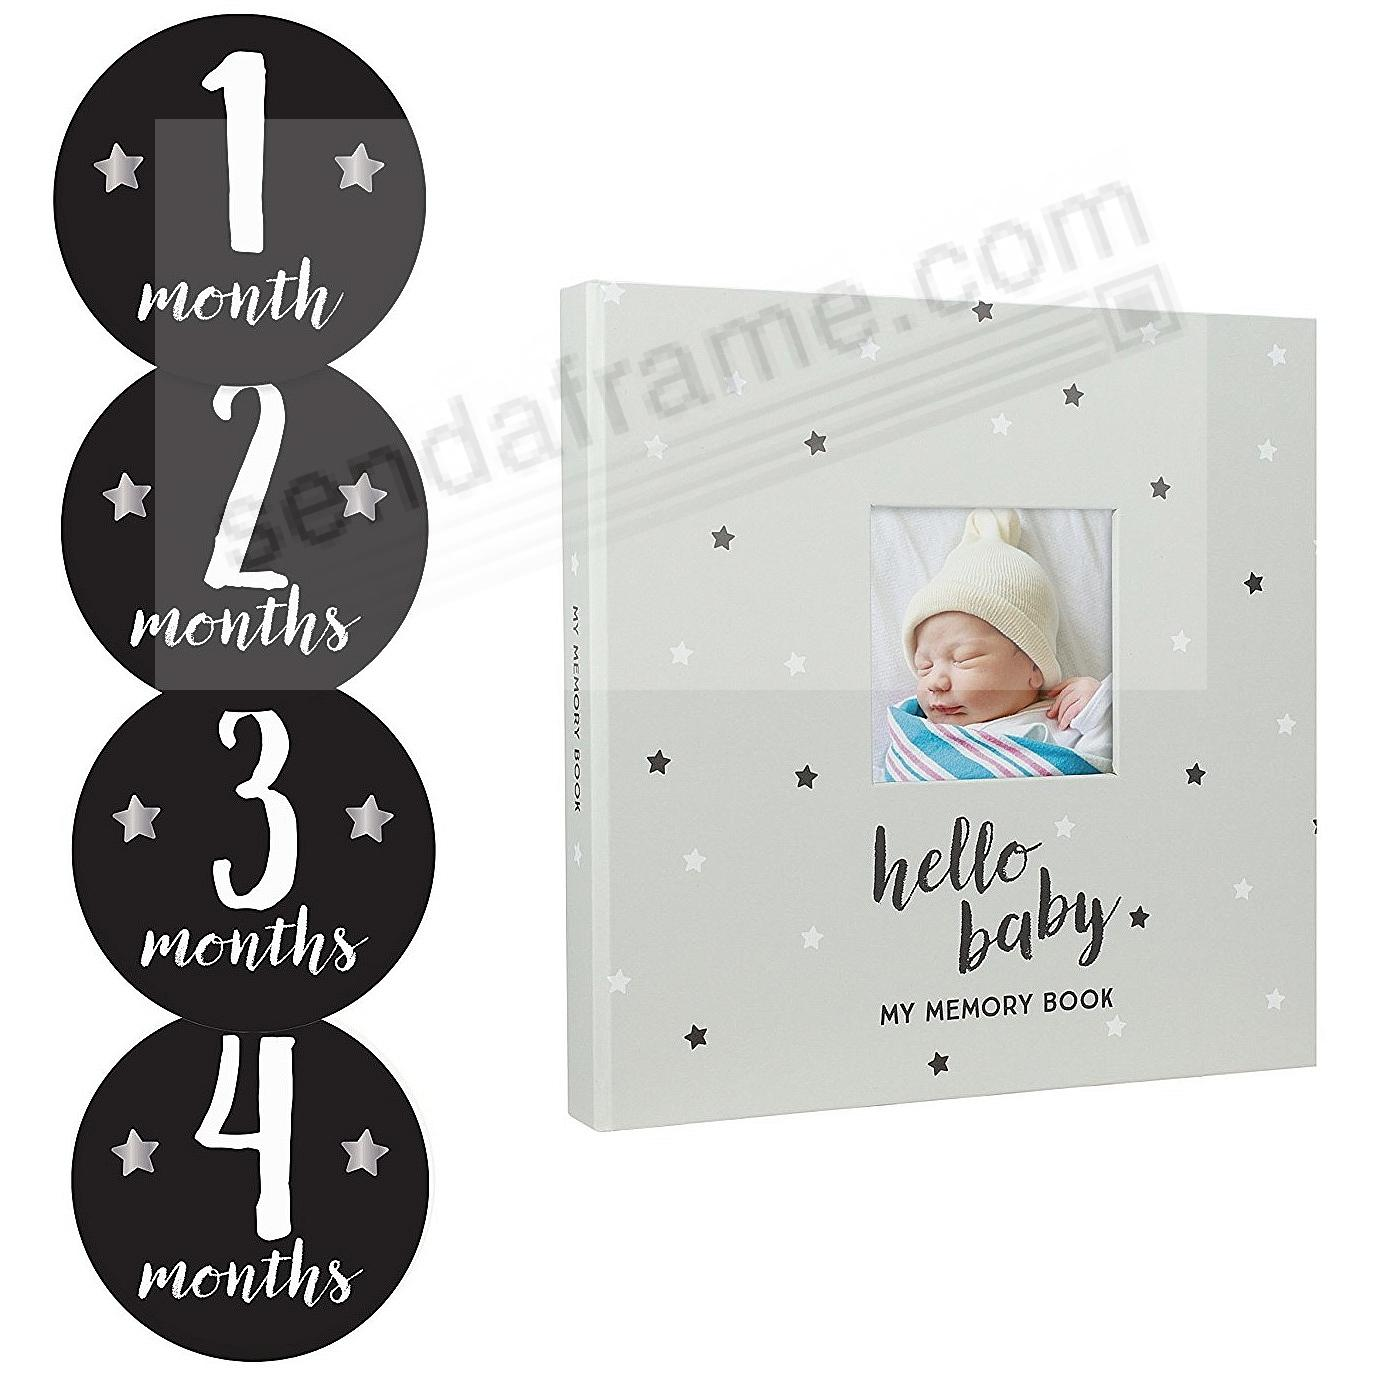 STARS BABY MEMORY BOOK + BABY BELLY STICKER SET by PEARHEAD®